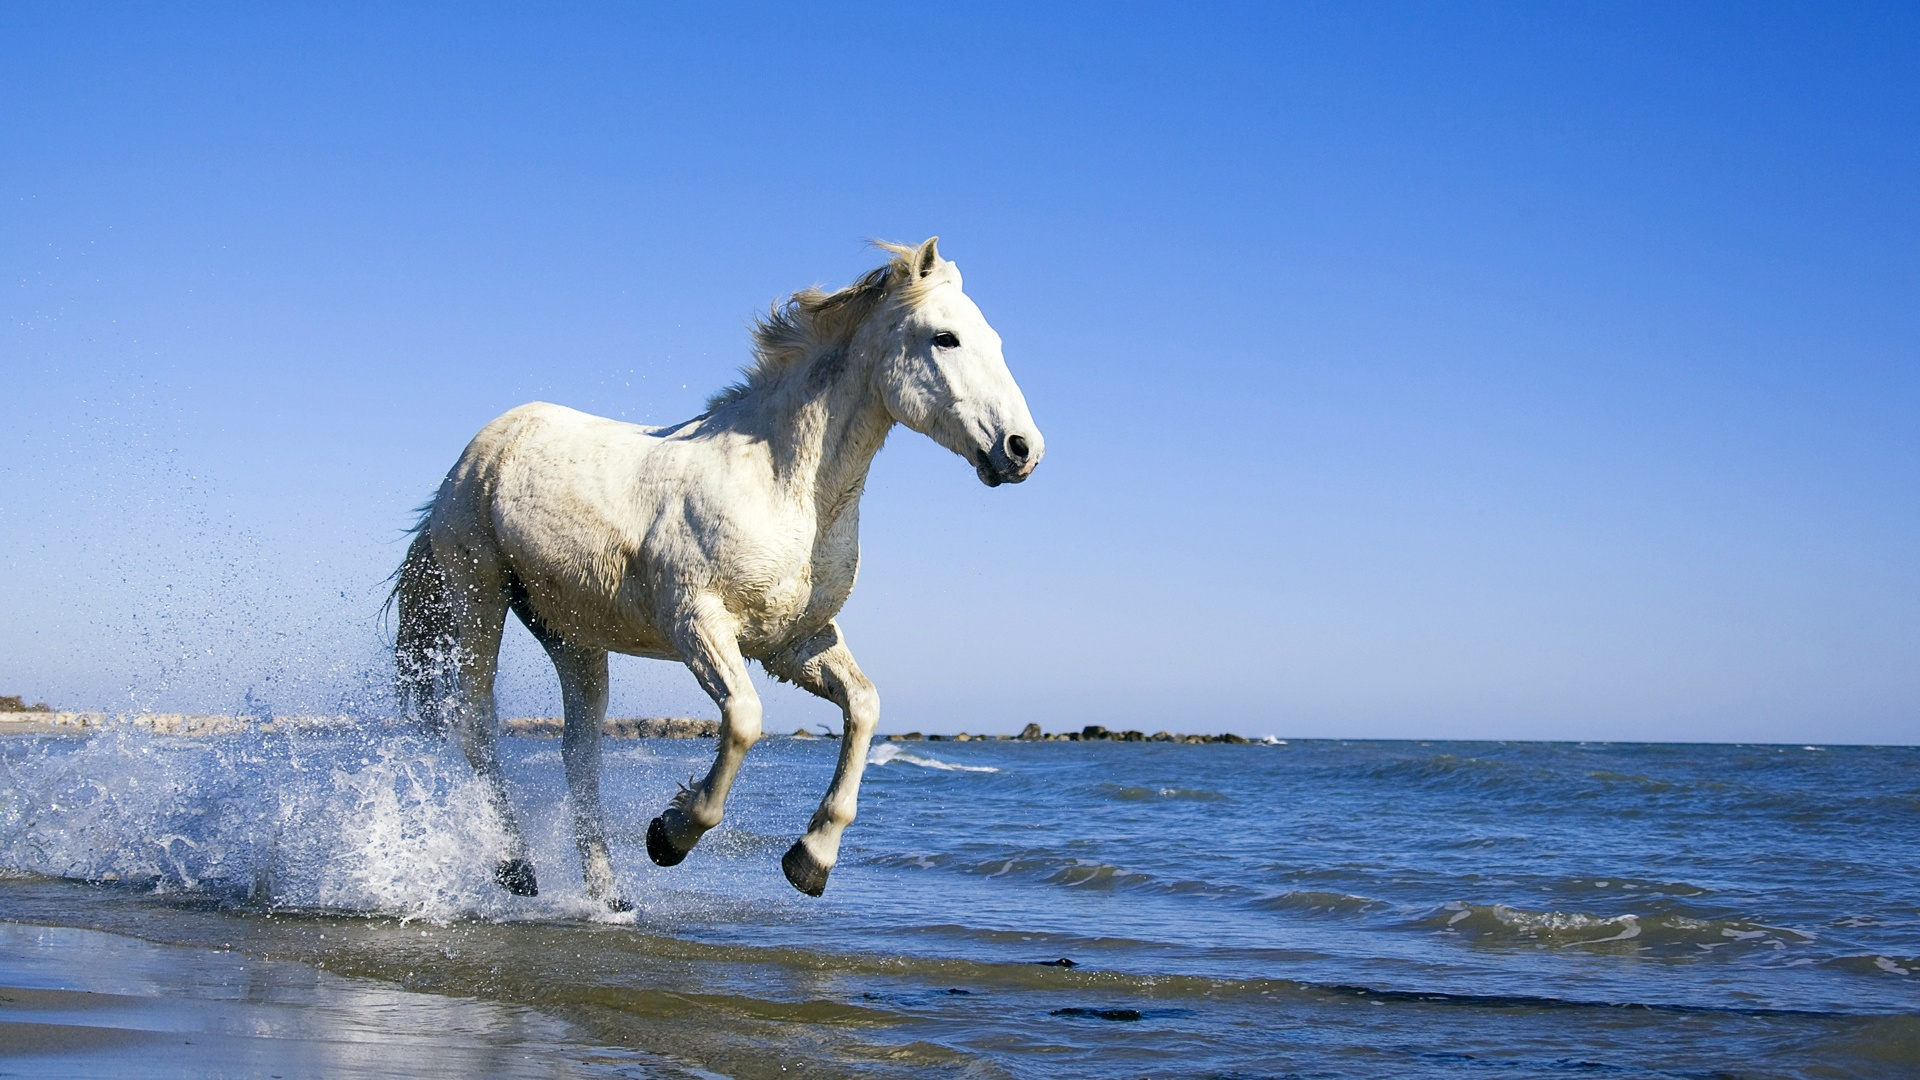 Cool   Wallpaper Horse Nature - white_horse_running_in_water-1920x1080  Pic_71233.jpg